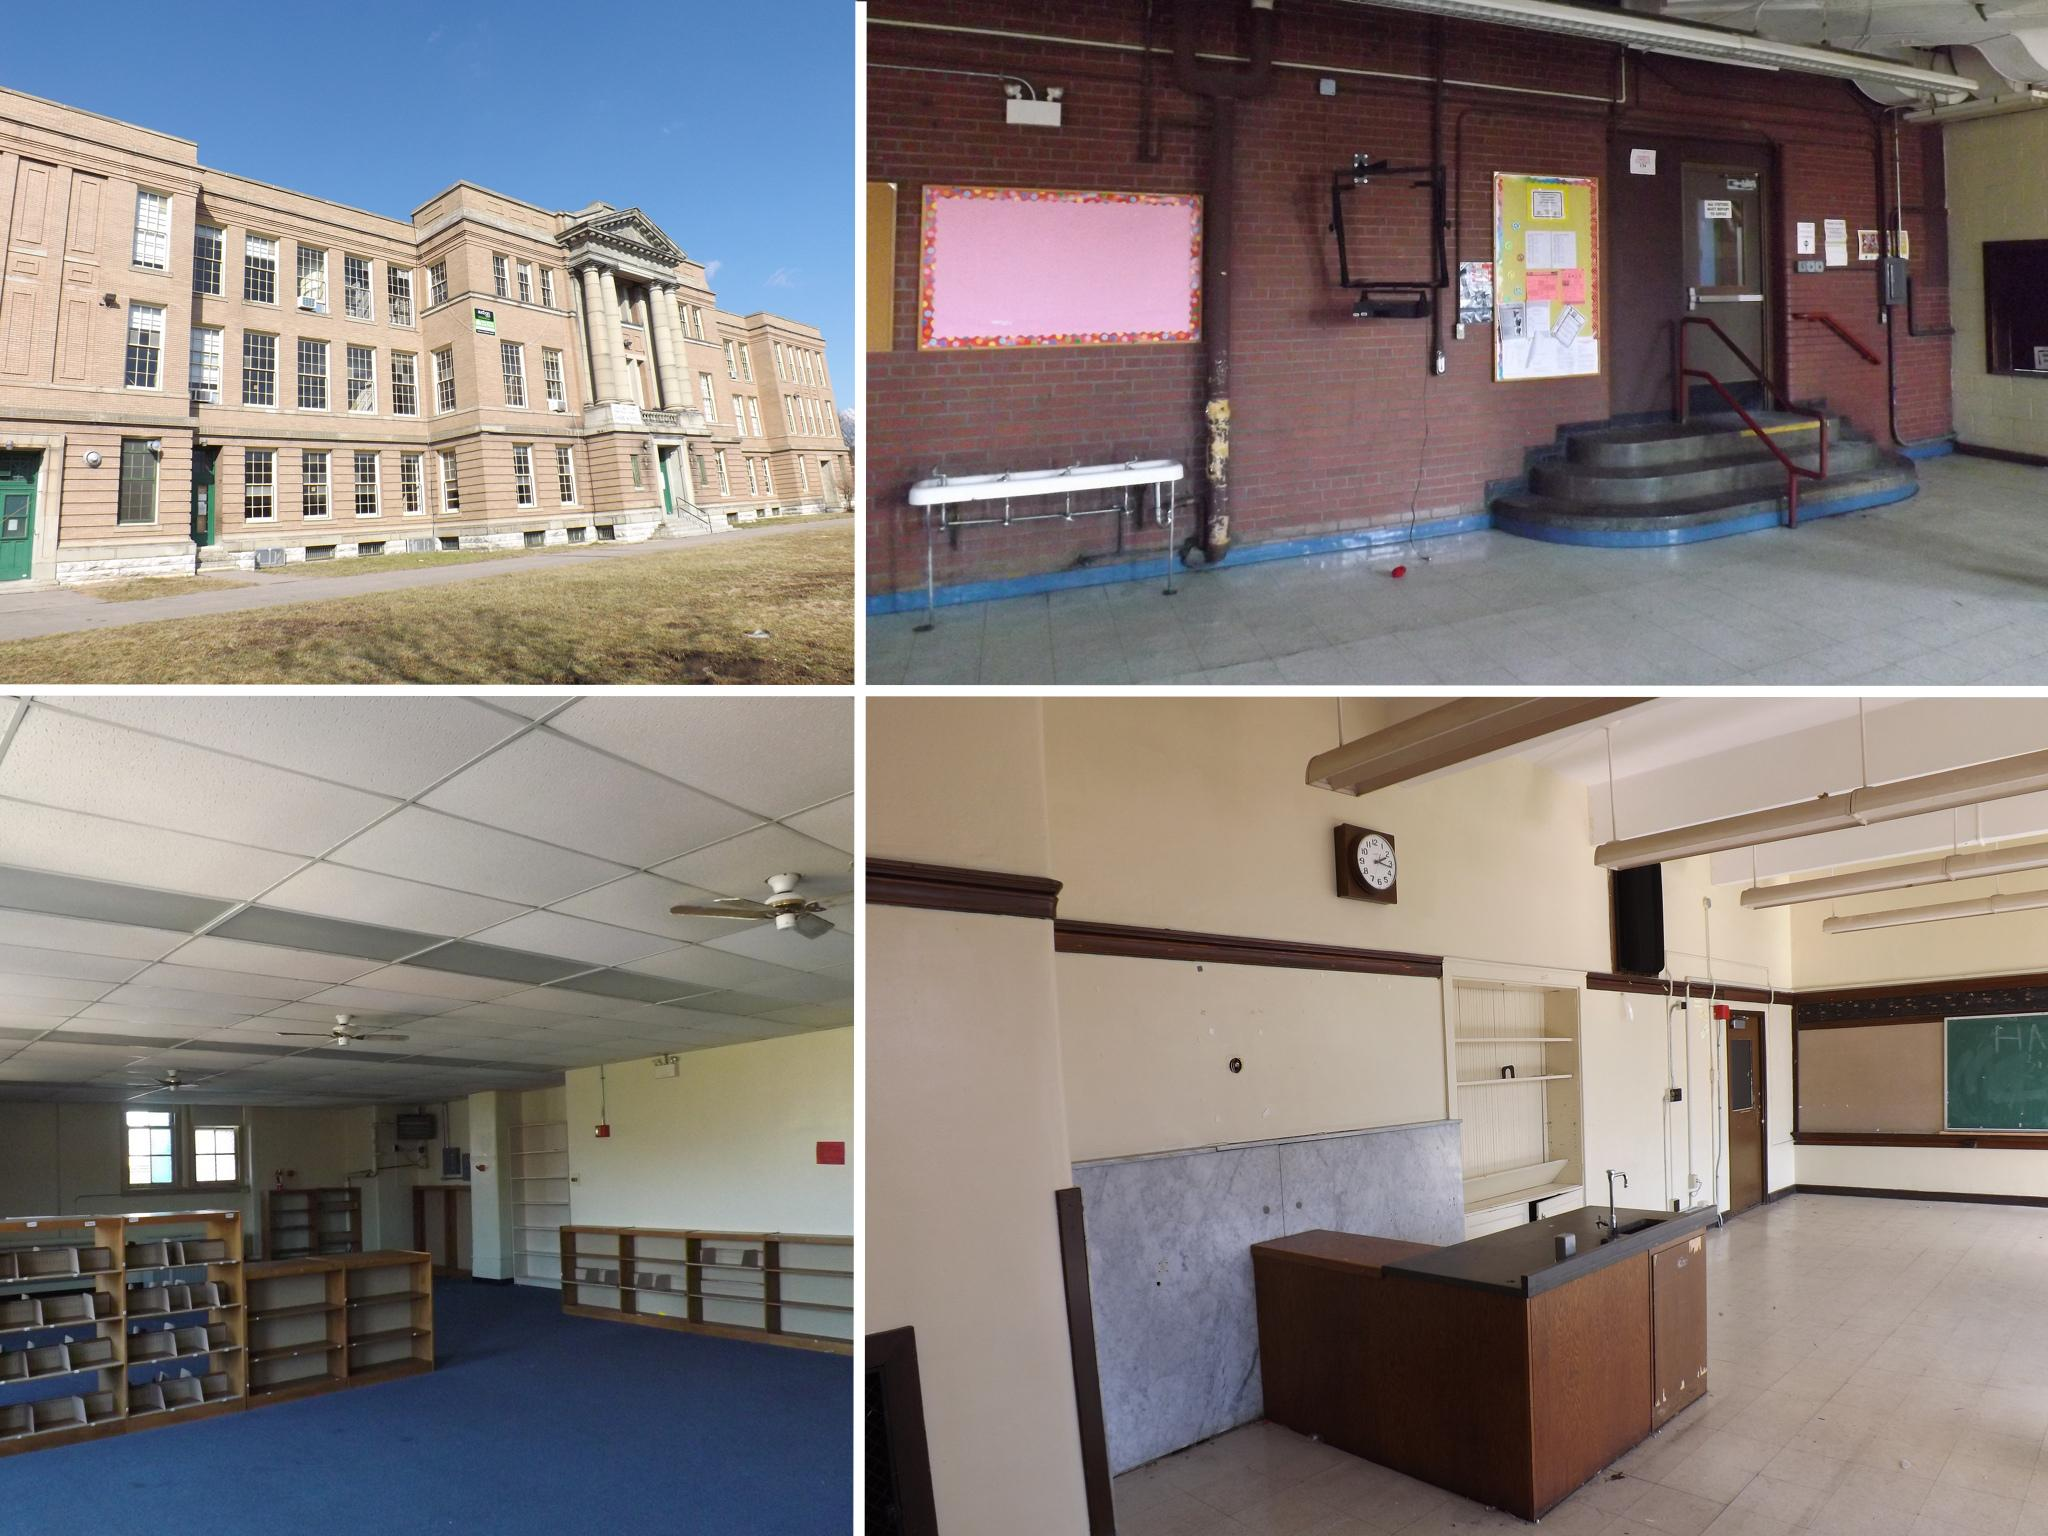 KIRBY SCHOOL APARTMENTS (Before) / ADDRESS: 1710 Bruce Avenue (45223) / CREDIT: $600,000 / PREVIOUSLY: The Kirby Road School / Images courtesy of the Ohio Department of Taxation, CC by 2.0, with changes